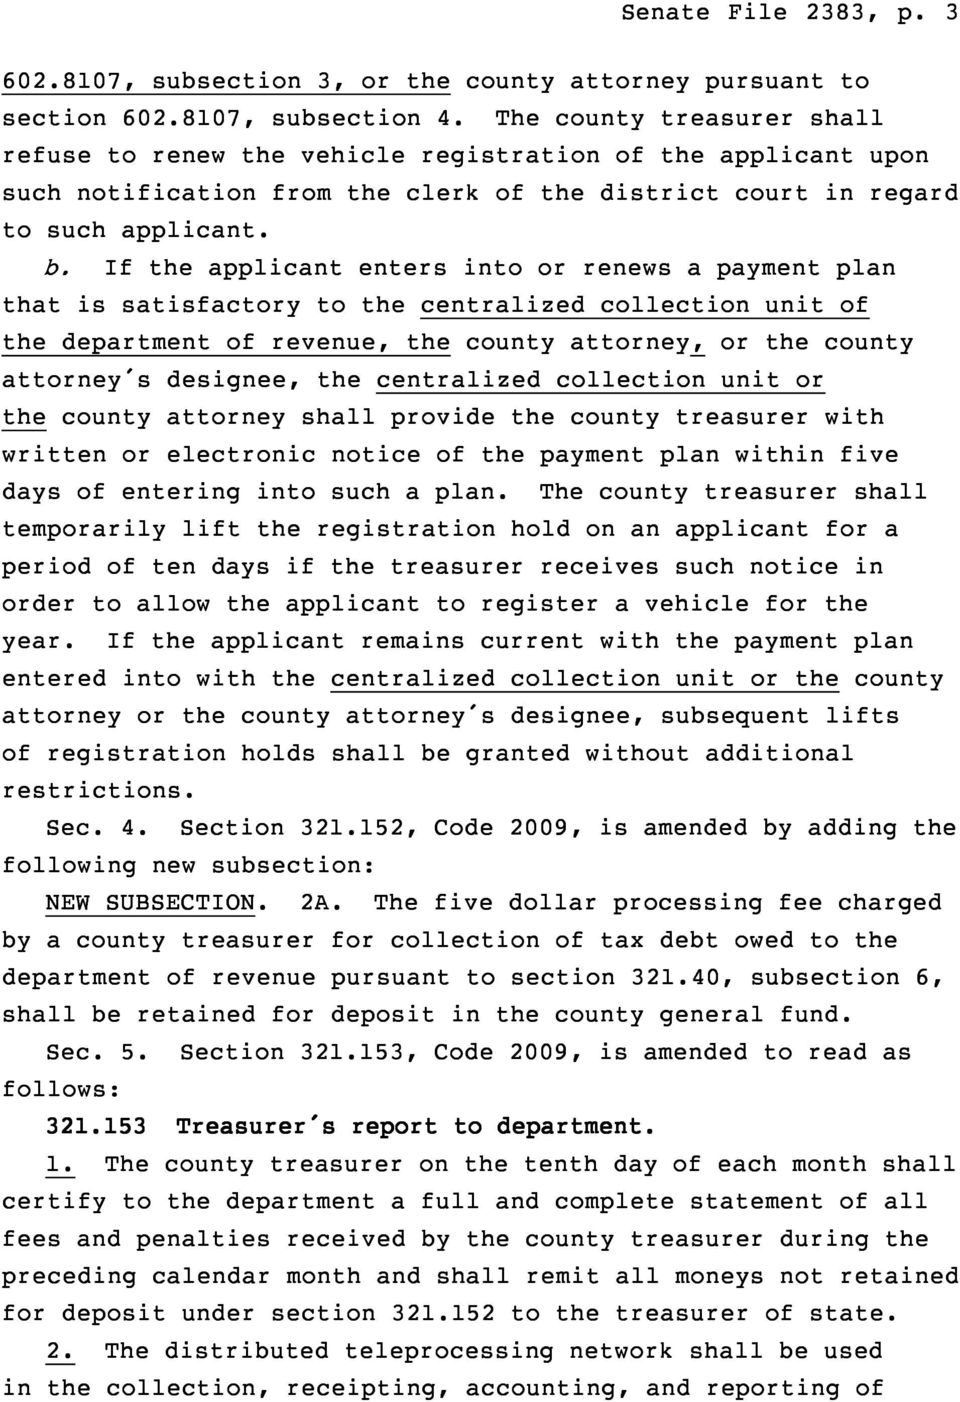 If the applicant enters into or renews a payment plan that is satisfactory to the centralized collection unit of the department of revenue, the county attorney, or the county attorney s designee, the